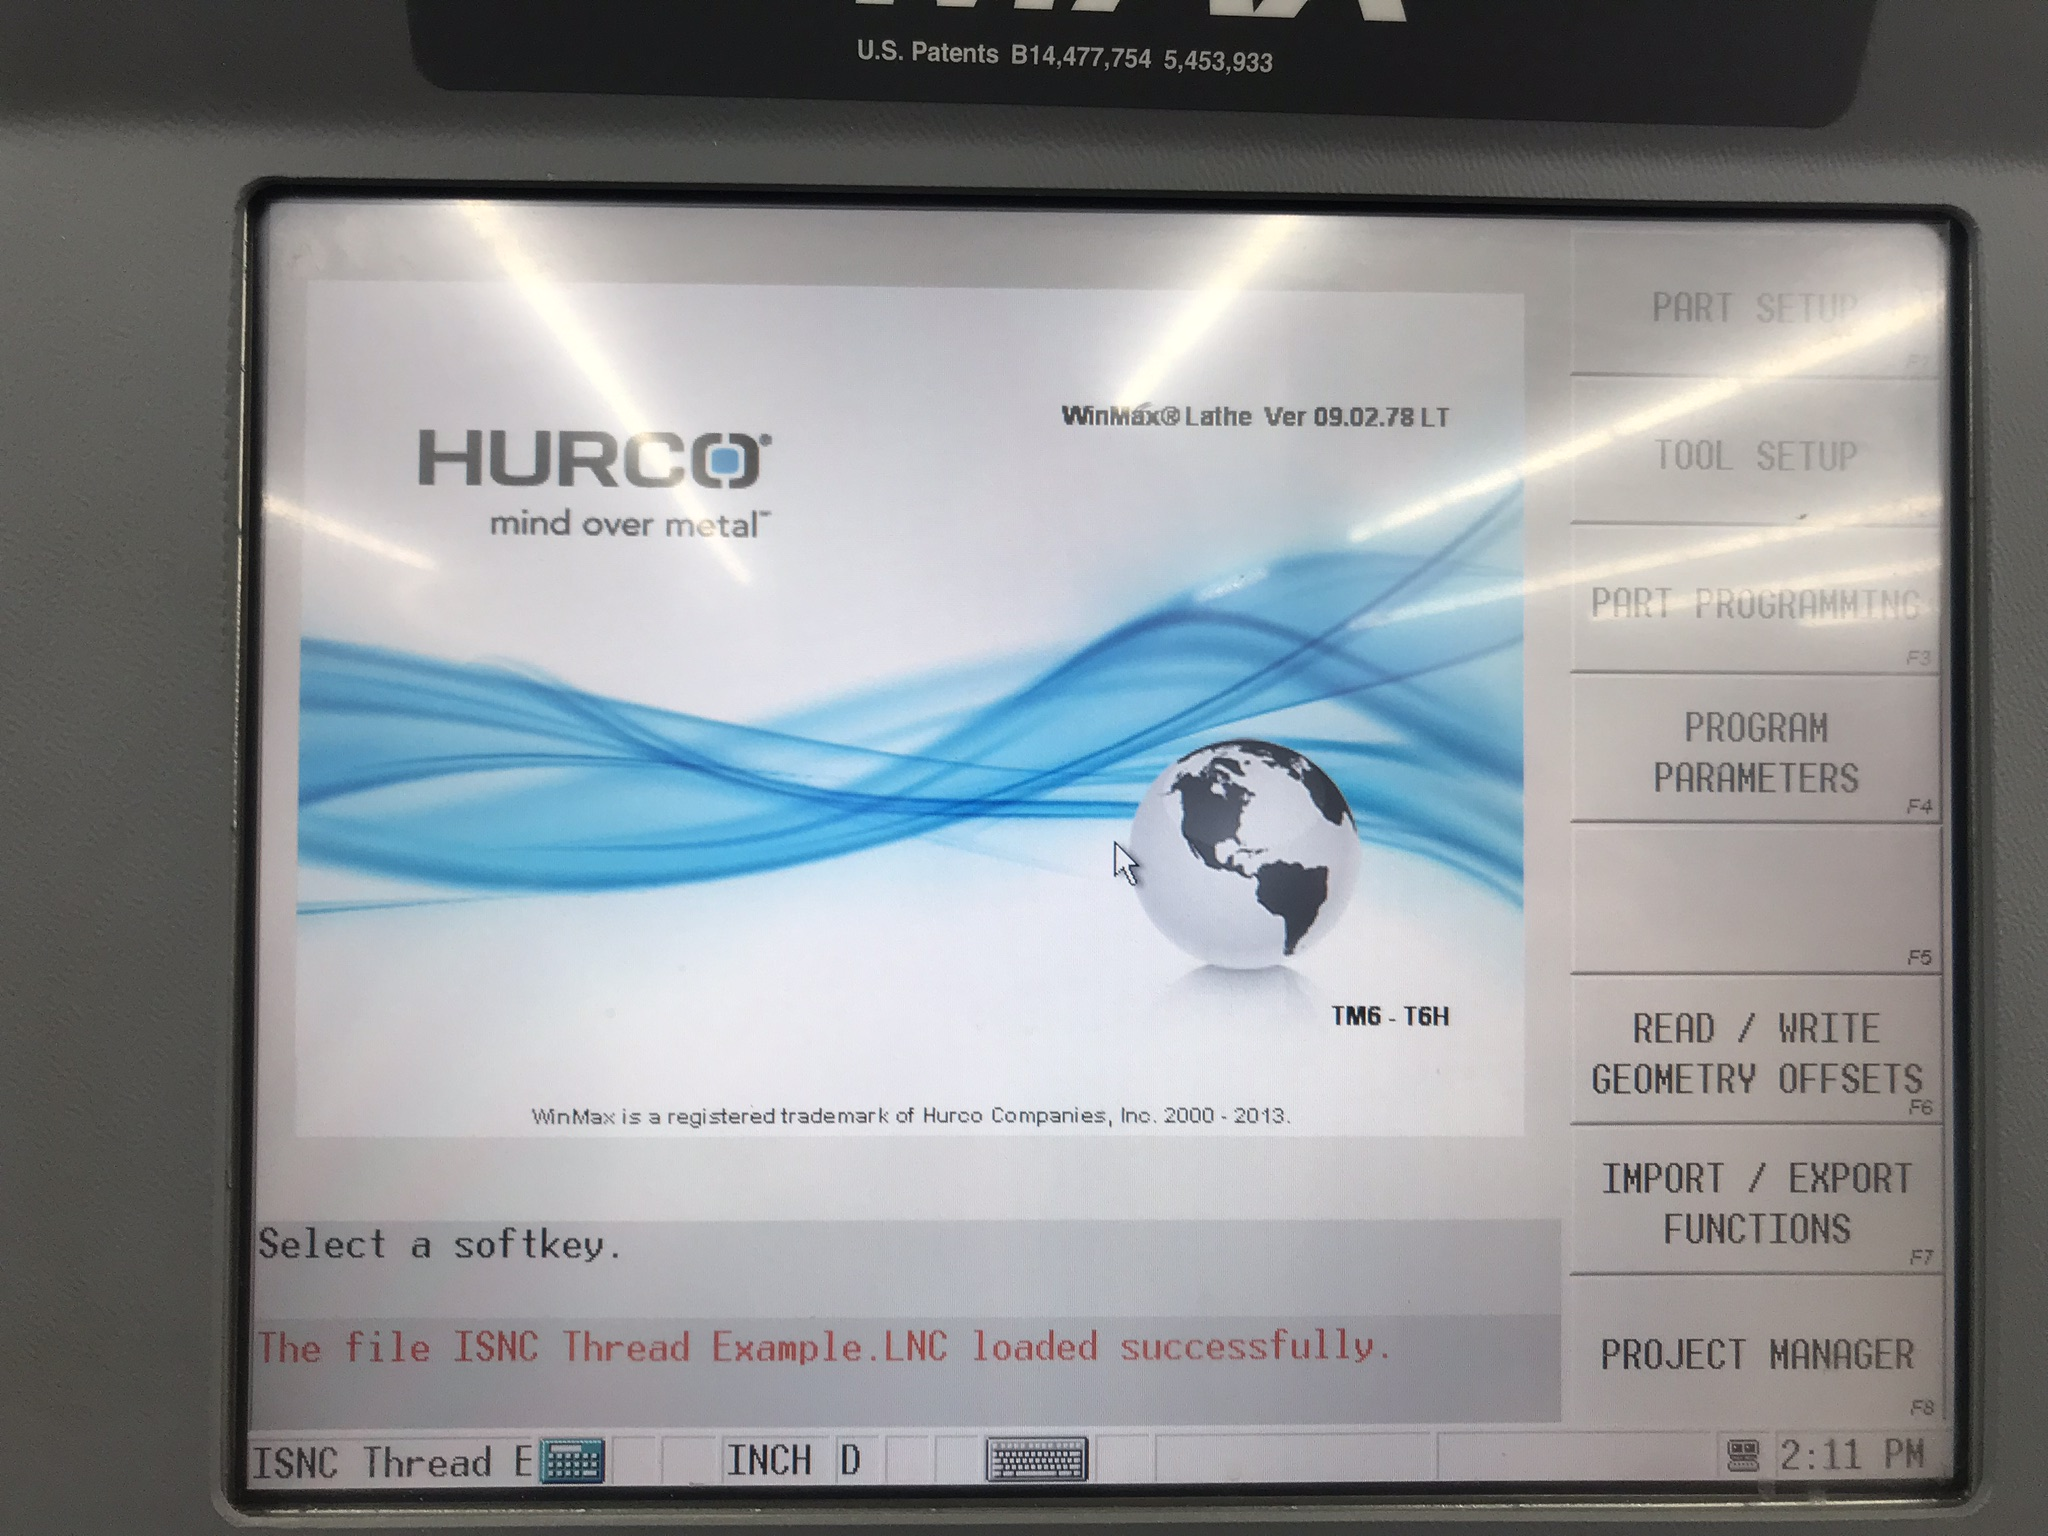 Hurco TM-6i CNC Lathe with HB65-1.2 Barfeed, Rigid Tap, Renishaw Presetter, Chip Conv, 400 Hours! - Image 16 of 16